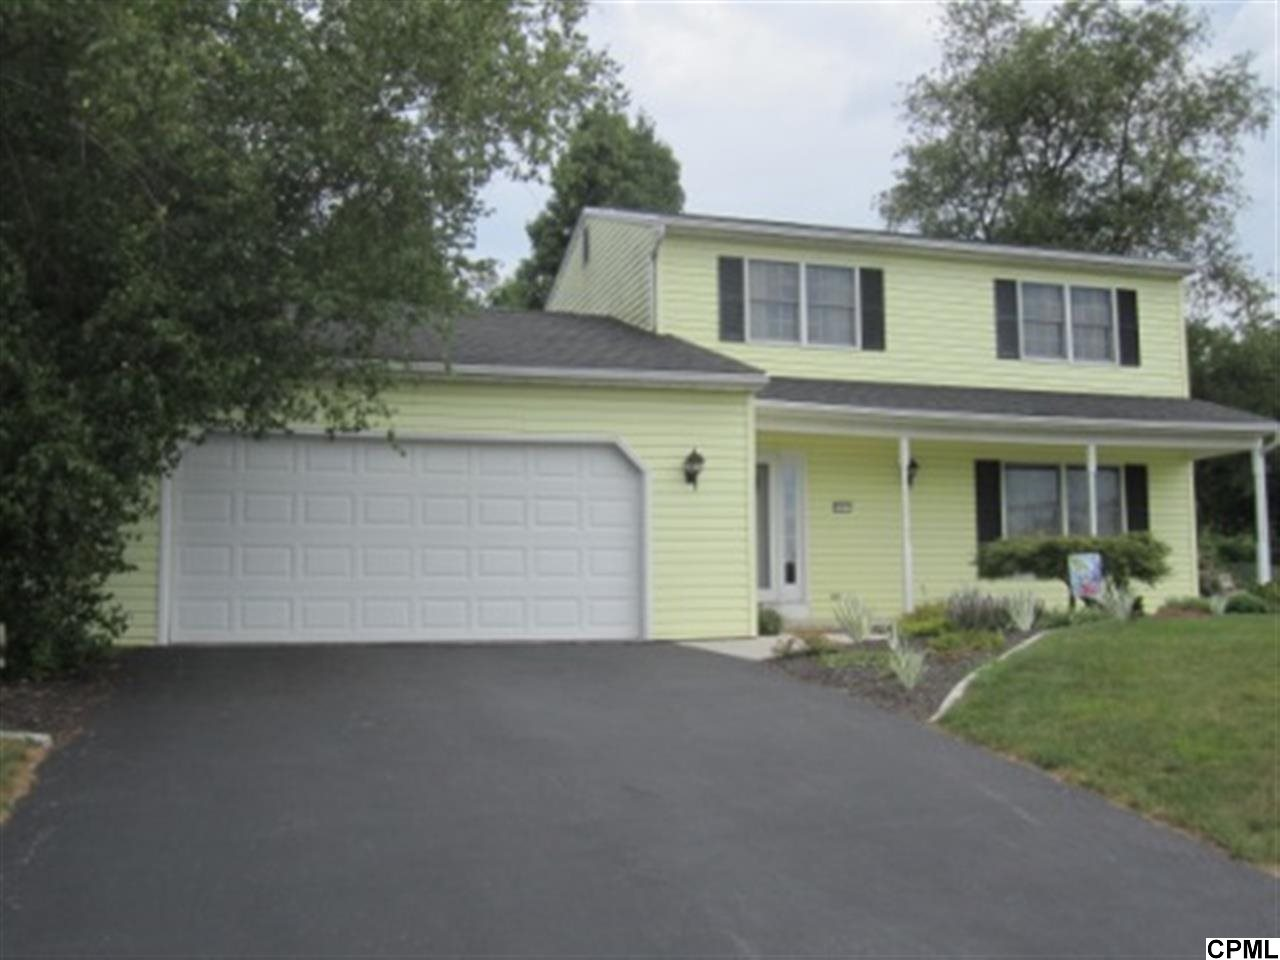 2417 Clover Dr, Mechanicsburg, PA 17055